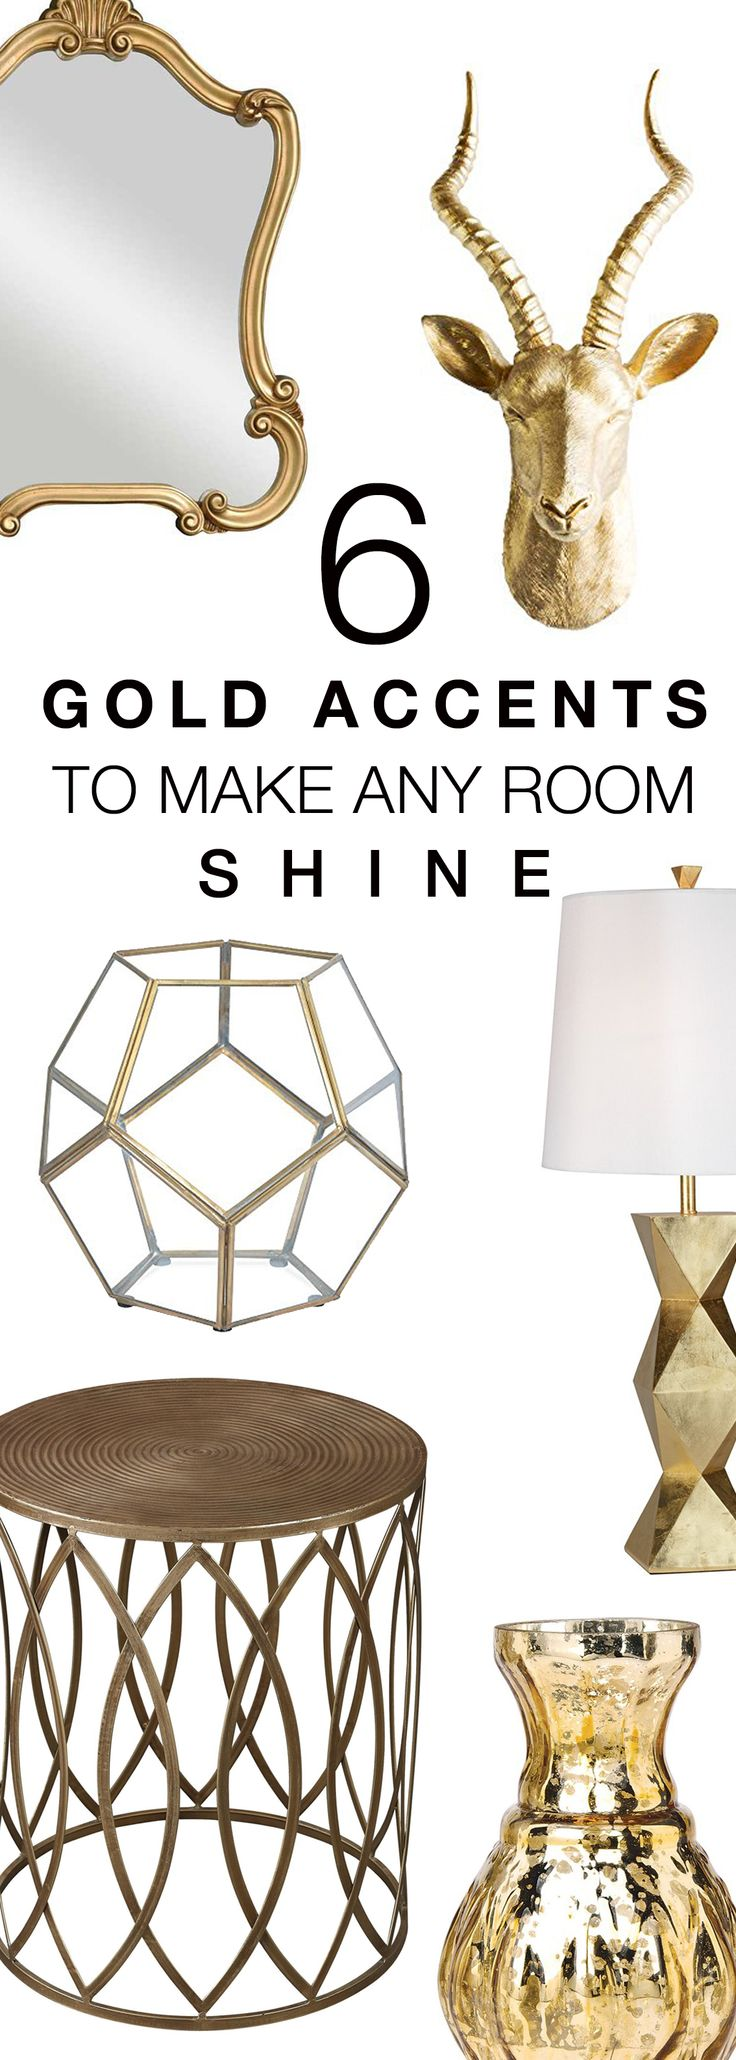 Gold Accents To Make Any Room Shine. Gold Home Decor Accessories,